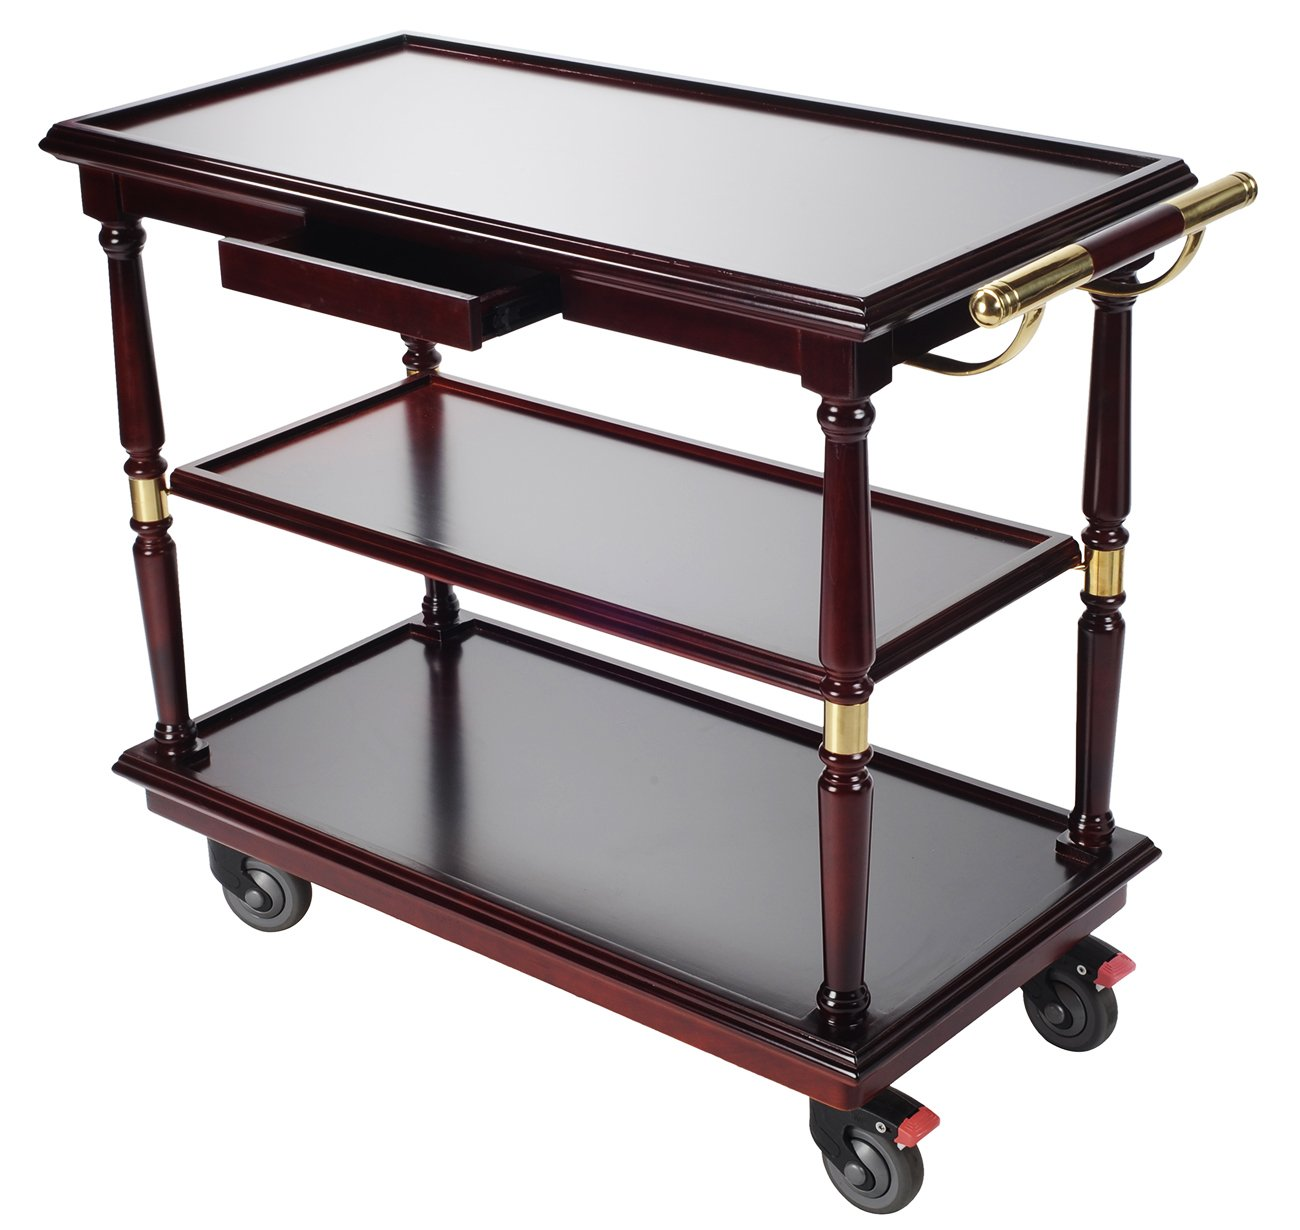 AMENITIES DEPOT Serving Trolley Cart 3 Tier Kitchen Cart with Easy Moving Flexible Wheels (C-13)